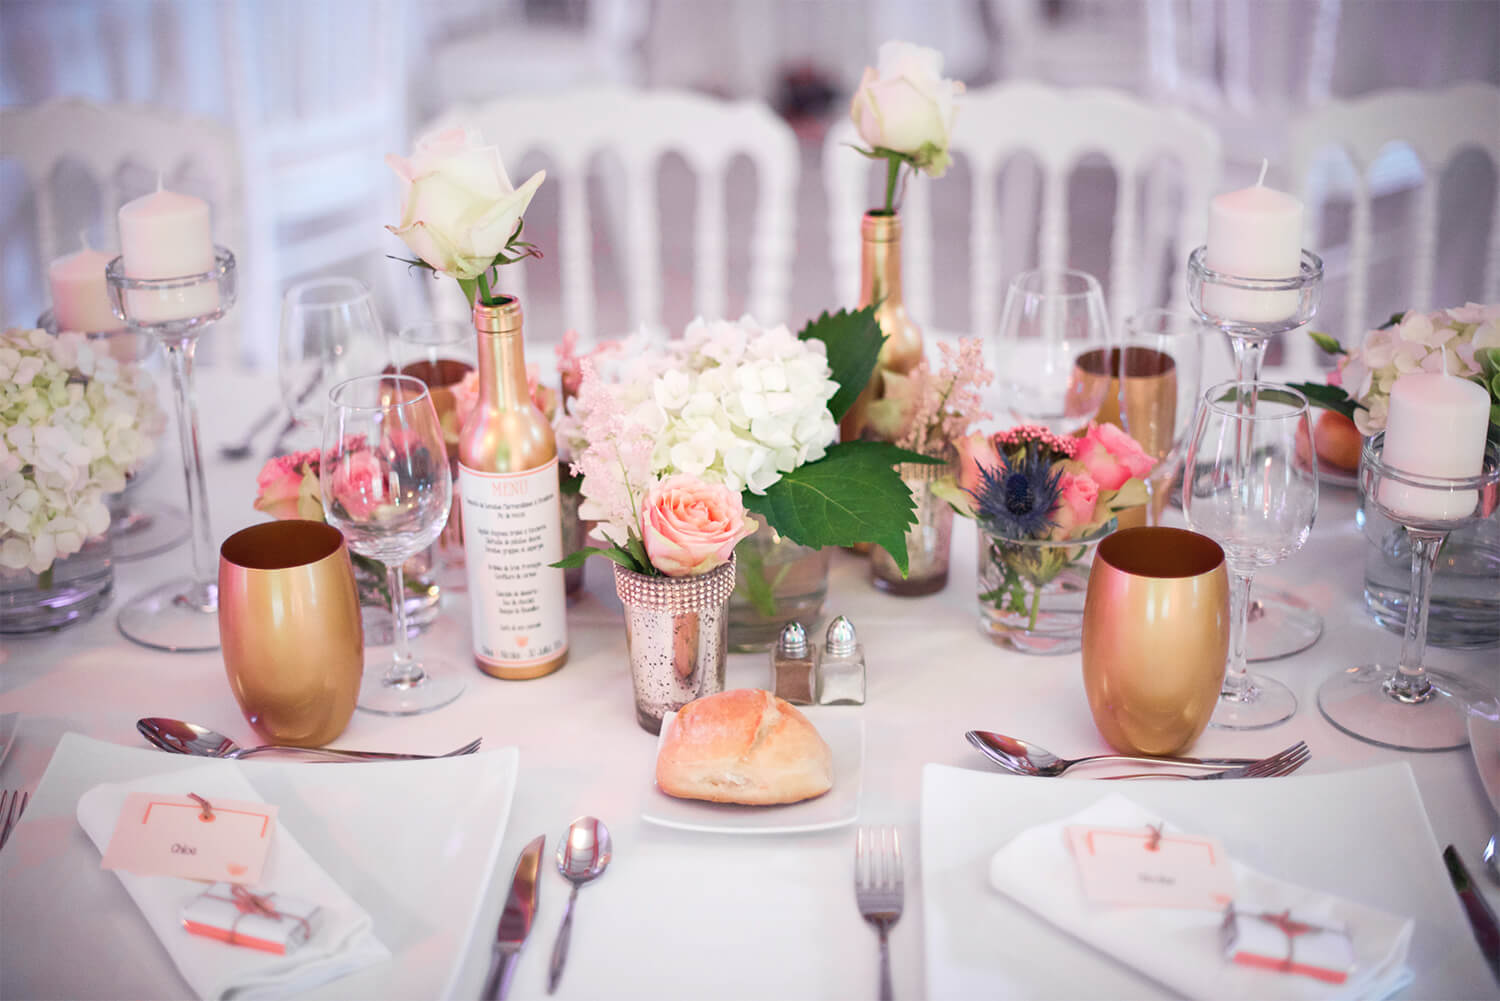 organisation-de-mariage-deco-de-table-weday's - wedding planner